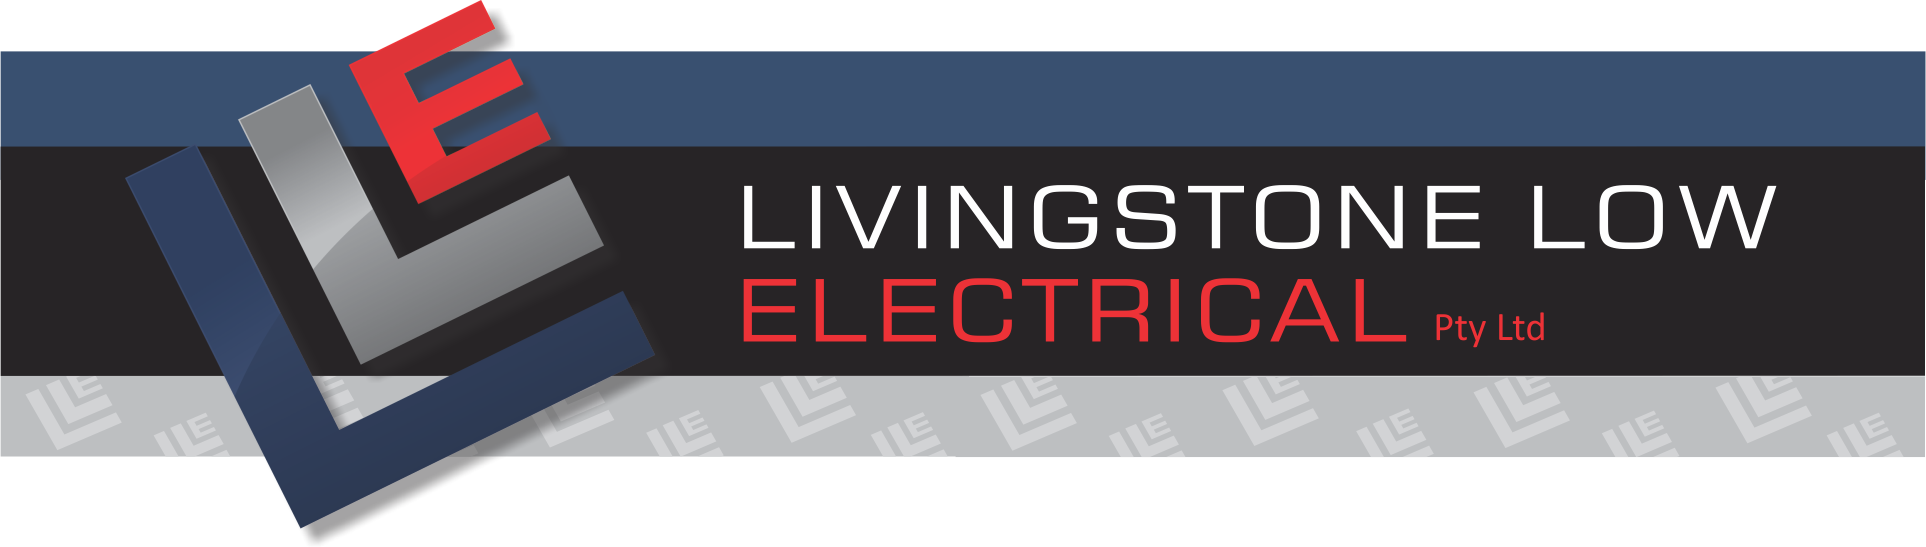 Livingstone Low Electrical